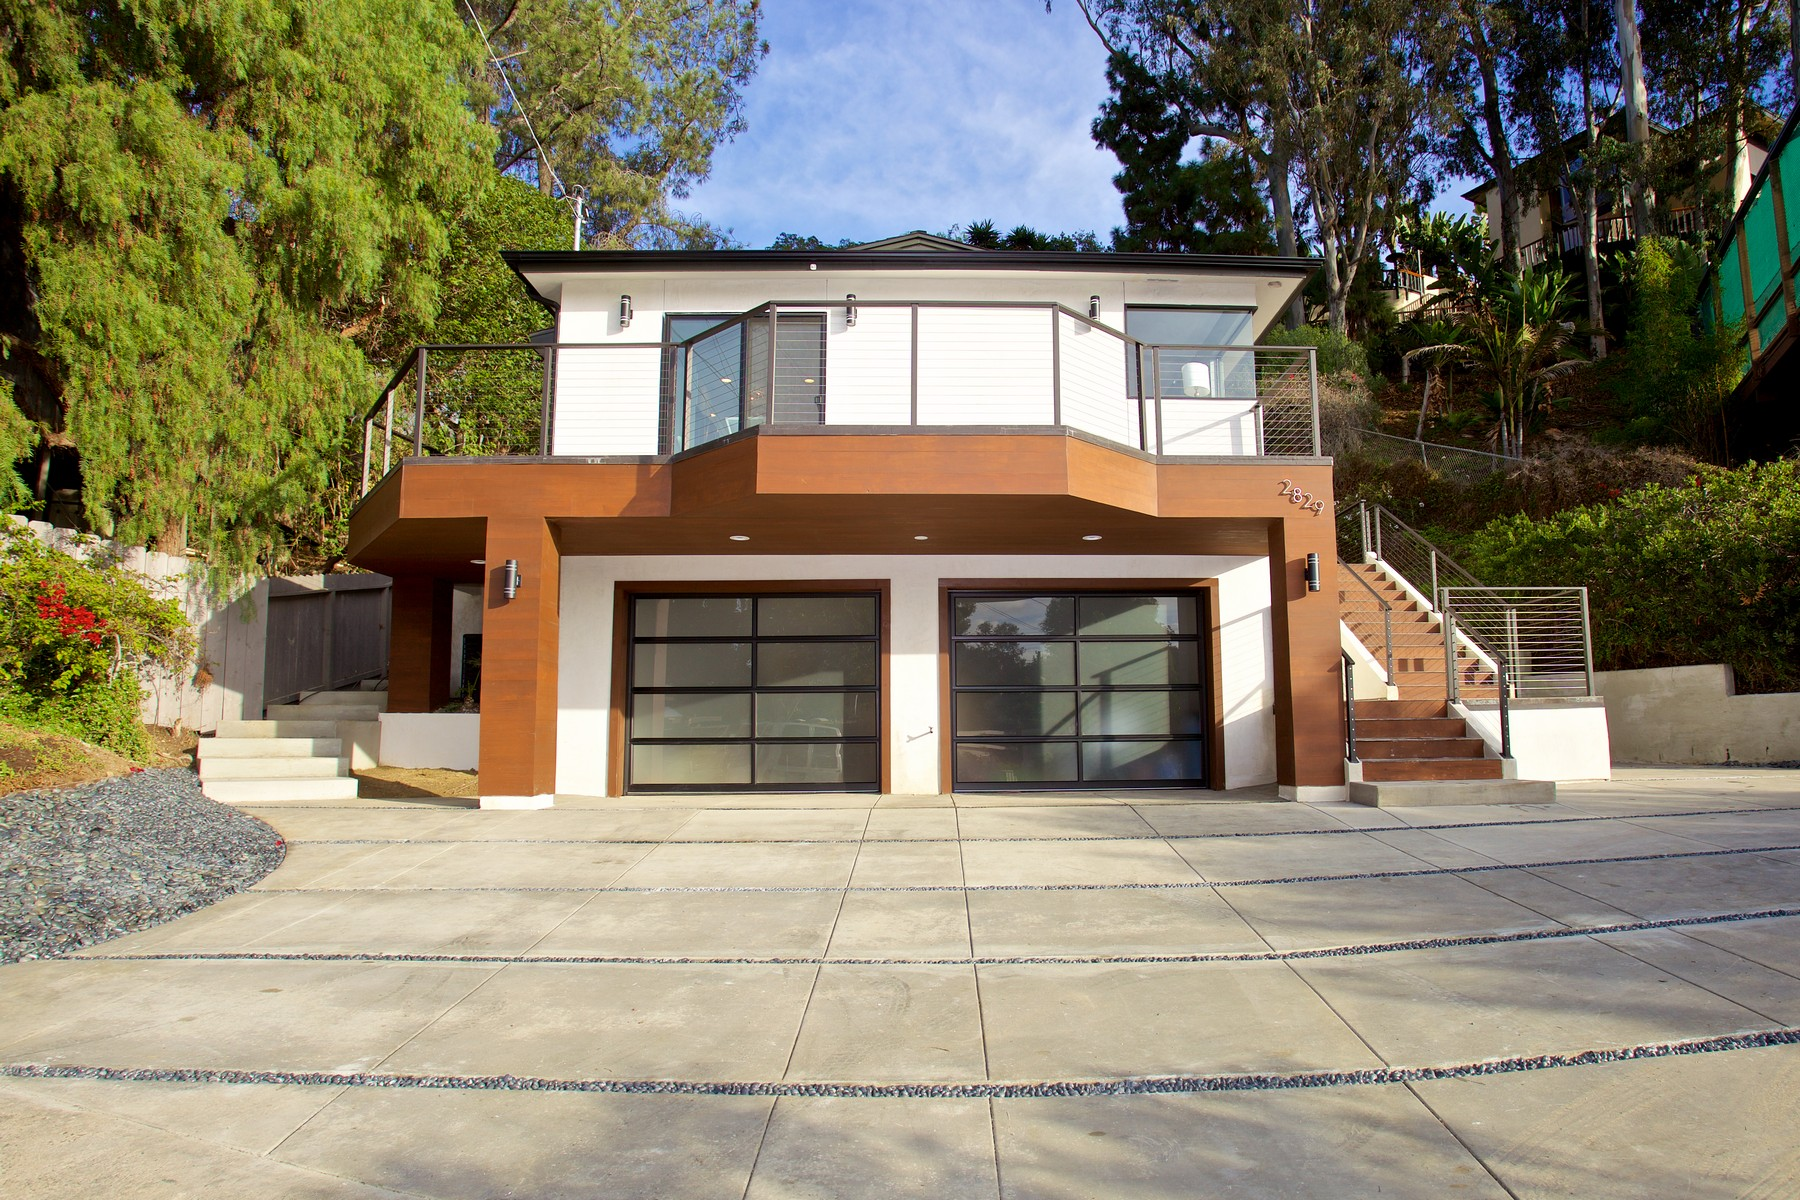 Single Family Home for Sale at 2829 Brant Street Mission Hills, San Diego, California 92103 United States